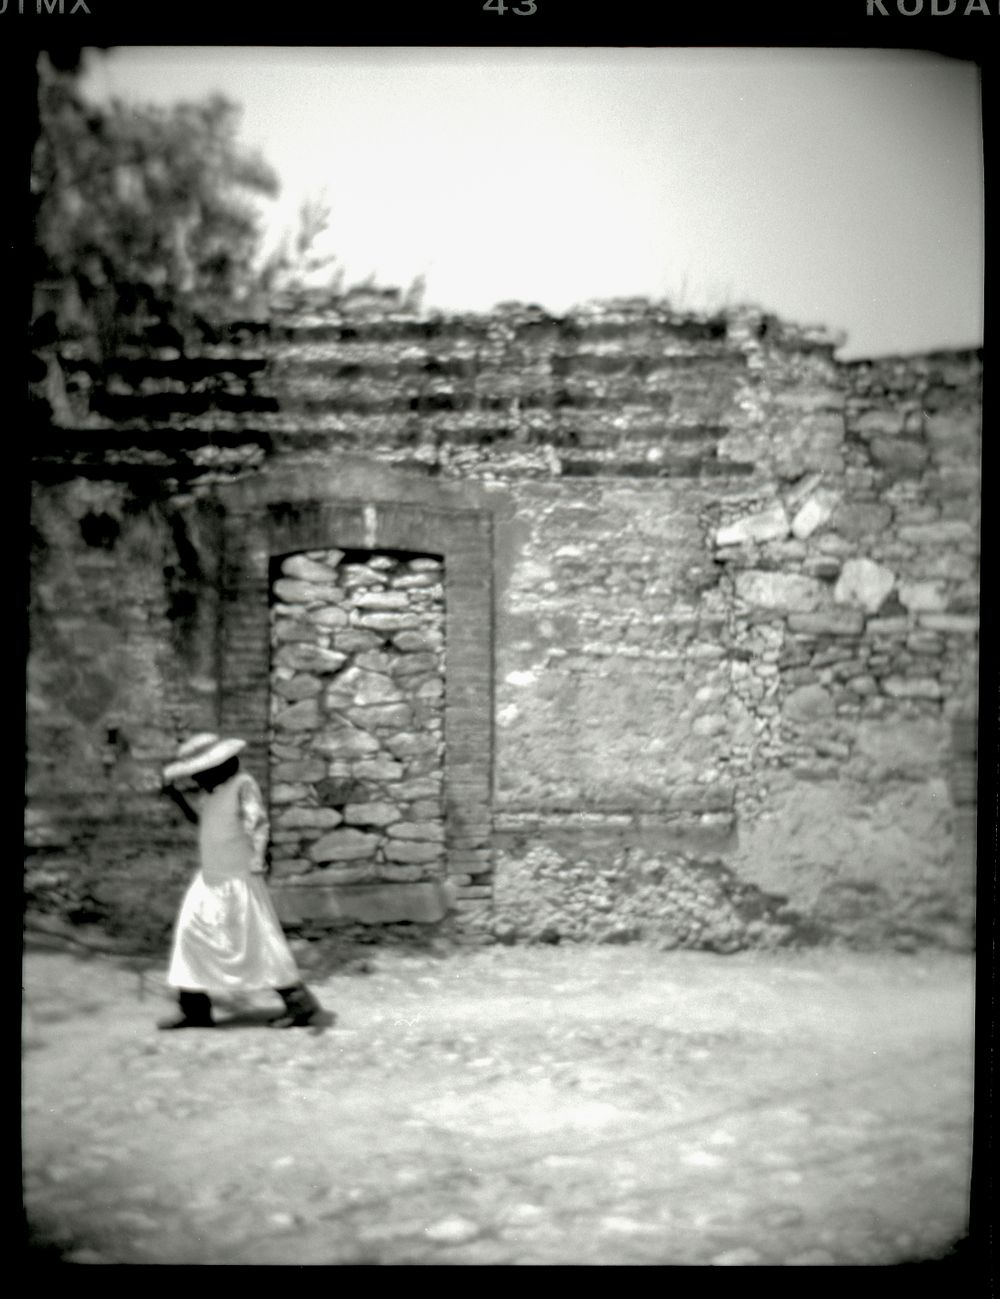 woman in pozos